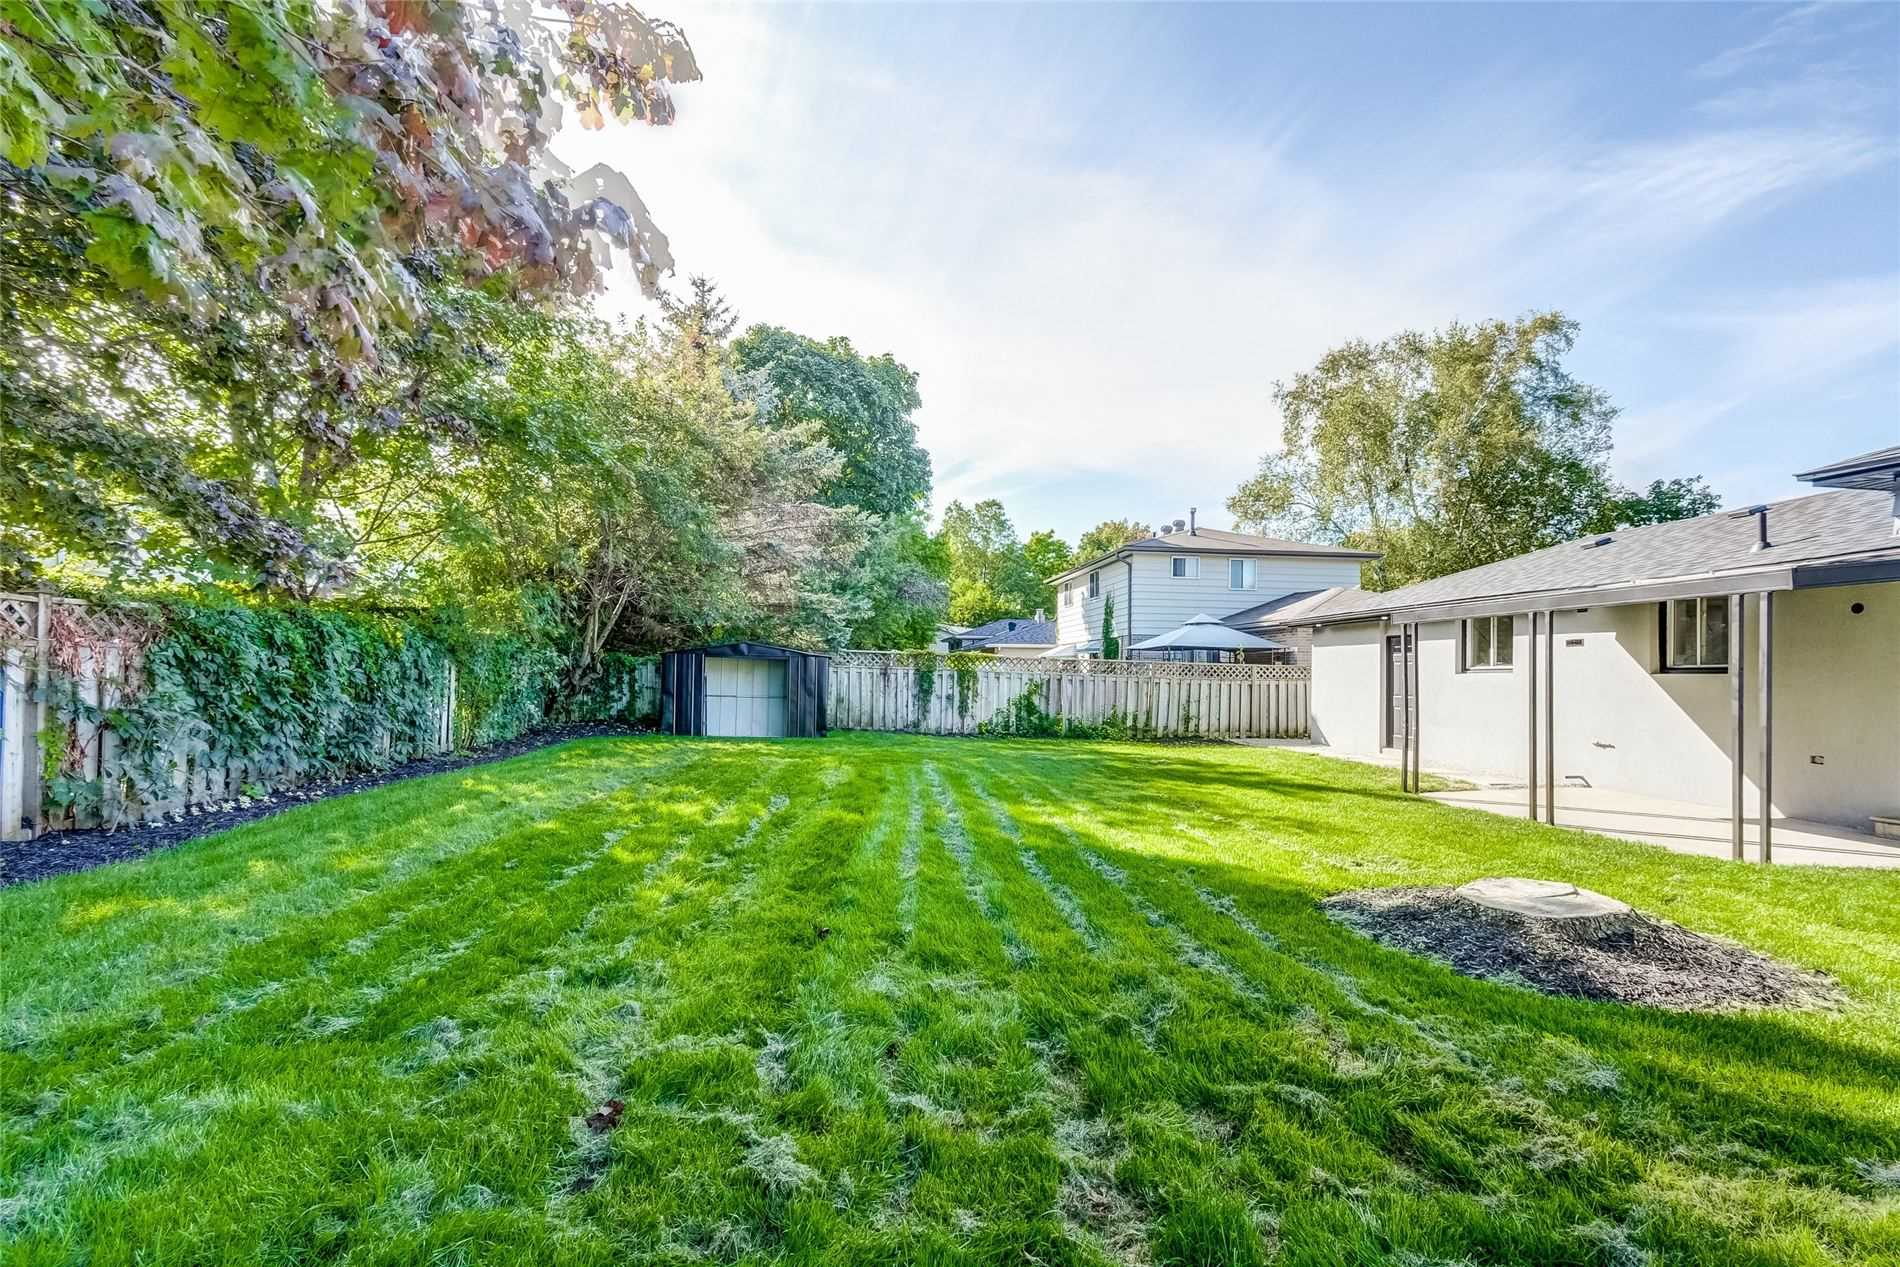 Detached house For Sale In Barrie - 4 Curtiss Crt, Barrie, Ontario, Canada L4M2M7 , 3 Bedrooms Bedrooms, ,2 BathroomsBathrooms,Detached,For Sale,Curtiss